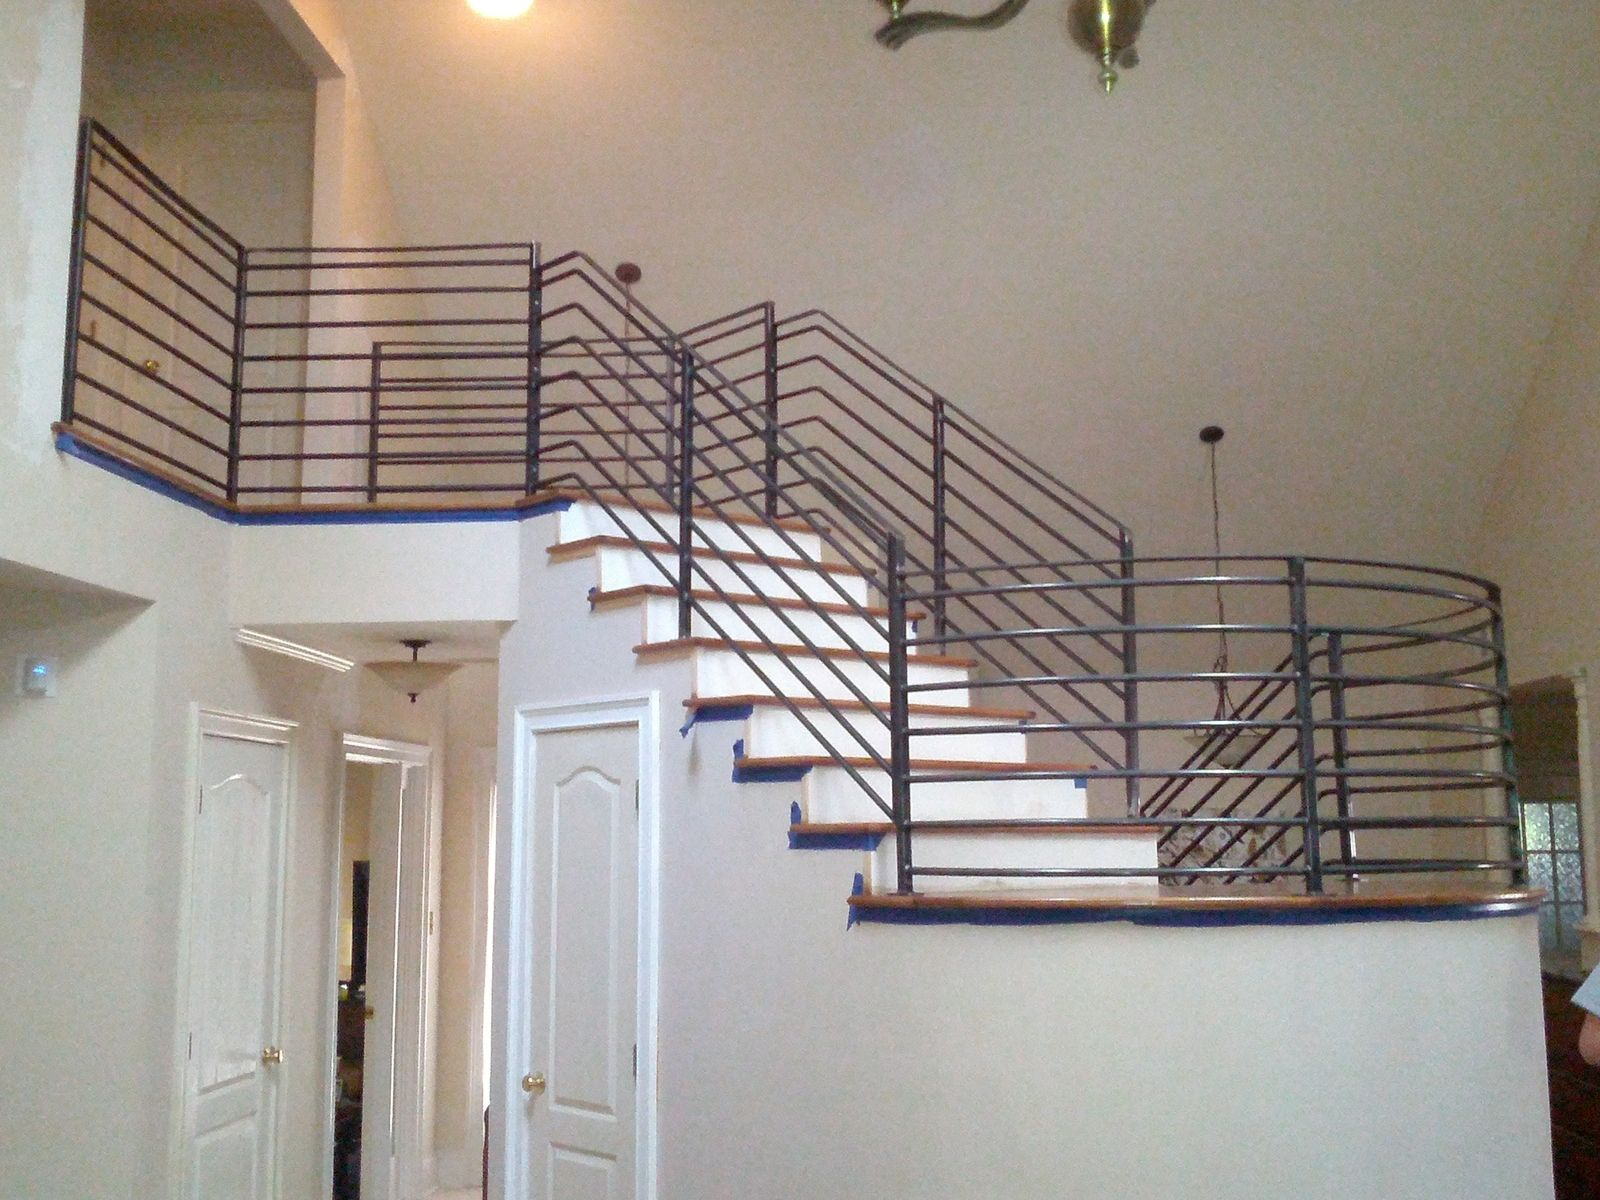 Custom Interior Stair Railing By Metal Fabrication And Sales Of Tallahassee Llc